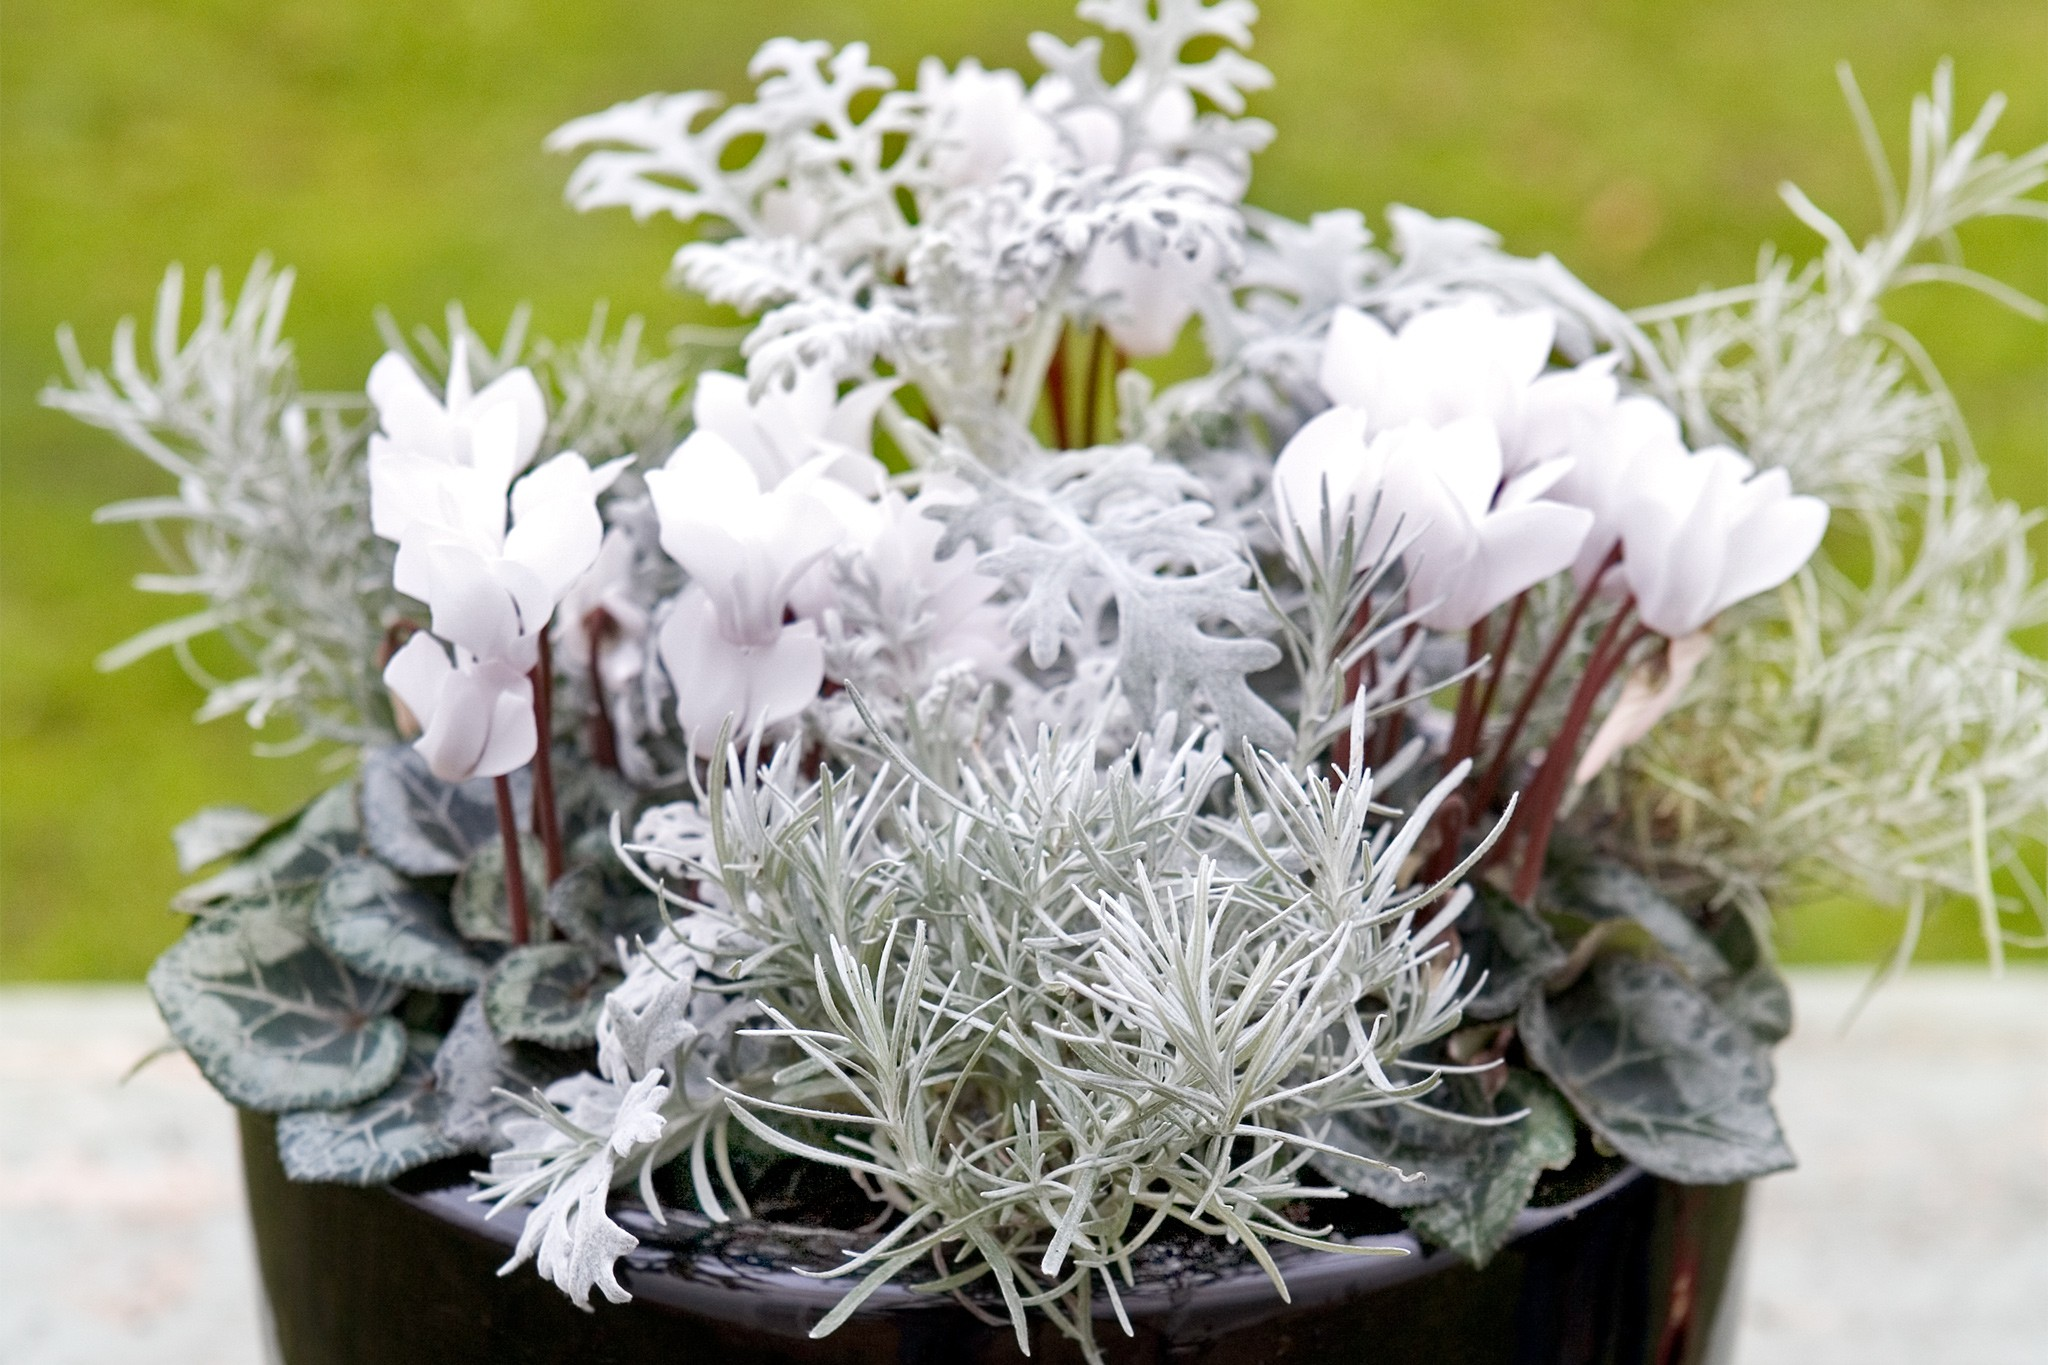 Plants with silver foliage